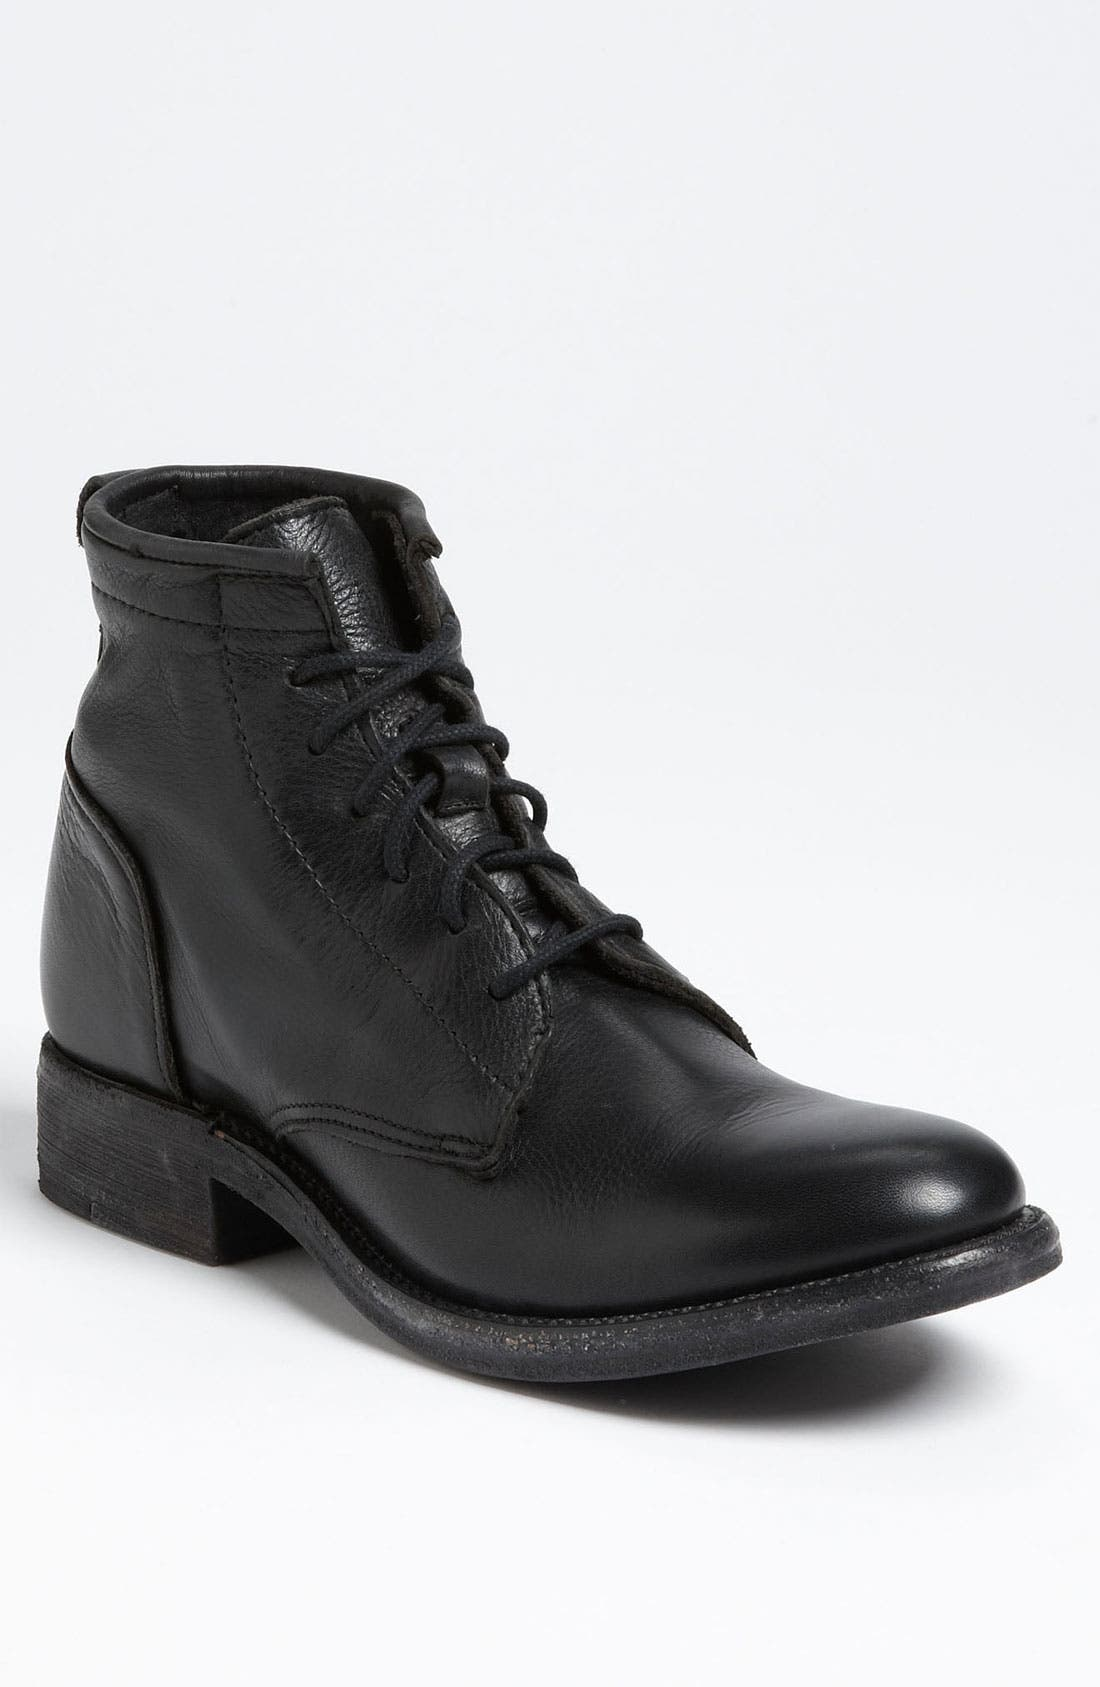 Main Image - Vintage Shoe Company 'Bluff' Boot